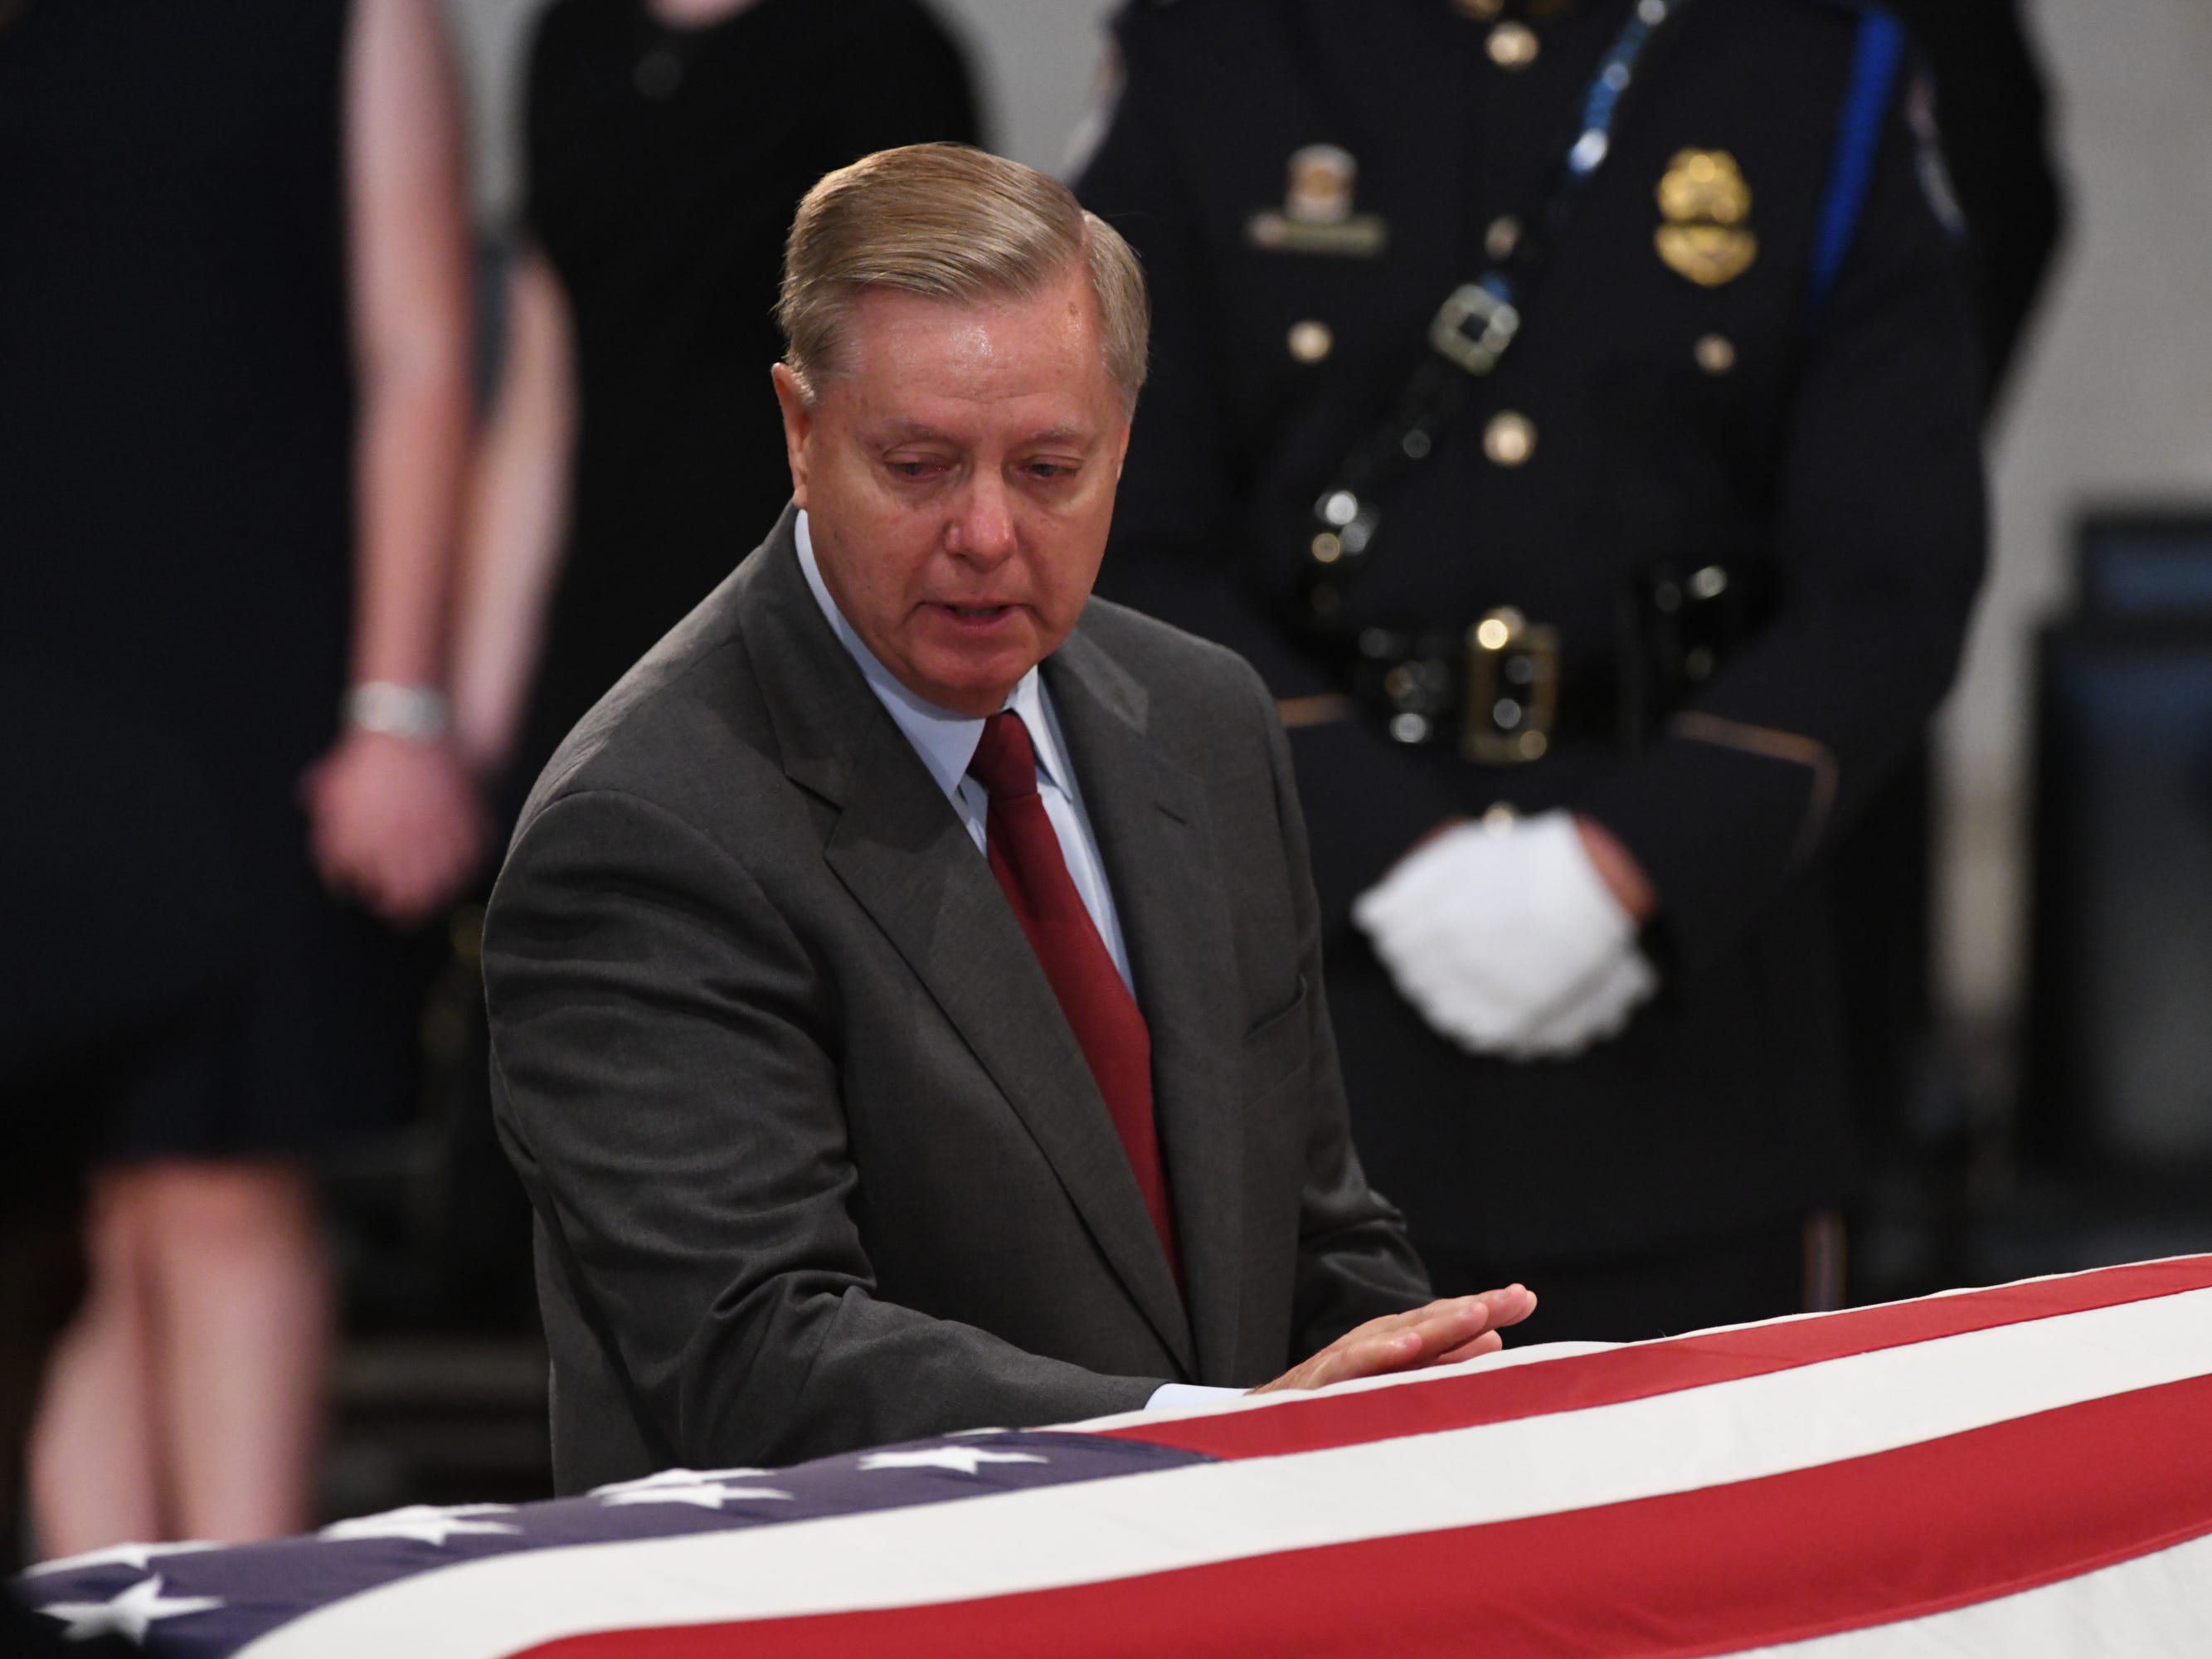 8/31/18 11:35:27 AM -- Washington, DC, U.S.A  -- Lindsey Grahama pays his respects as the body of John McCain lies in state at the U.S. Capitol in Washington on Aug. 31, 2018 in Washington. Sen. McCain died on Aug. 25. --    Photo by Jasper Colt, USA TODAY Staff ORG XMIT:  JC 137436 McCain U.S. Capi 8/31/2018 (Via OlyDrop)